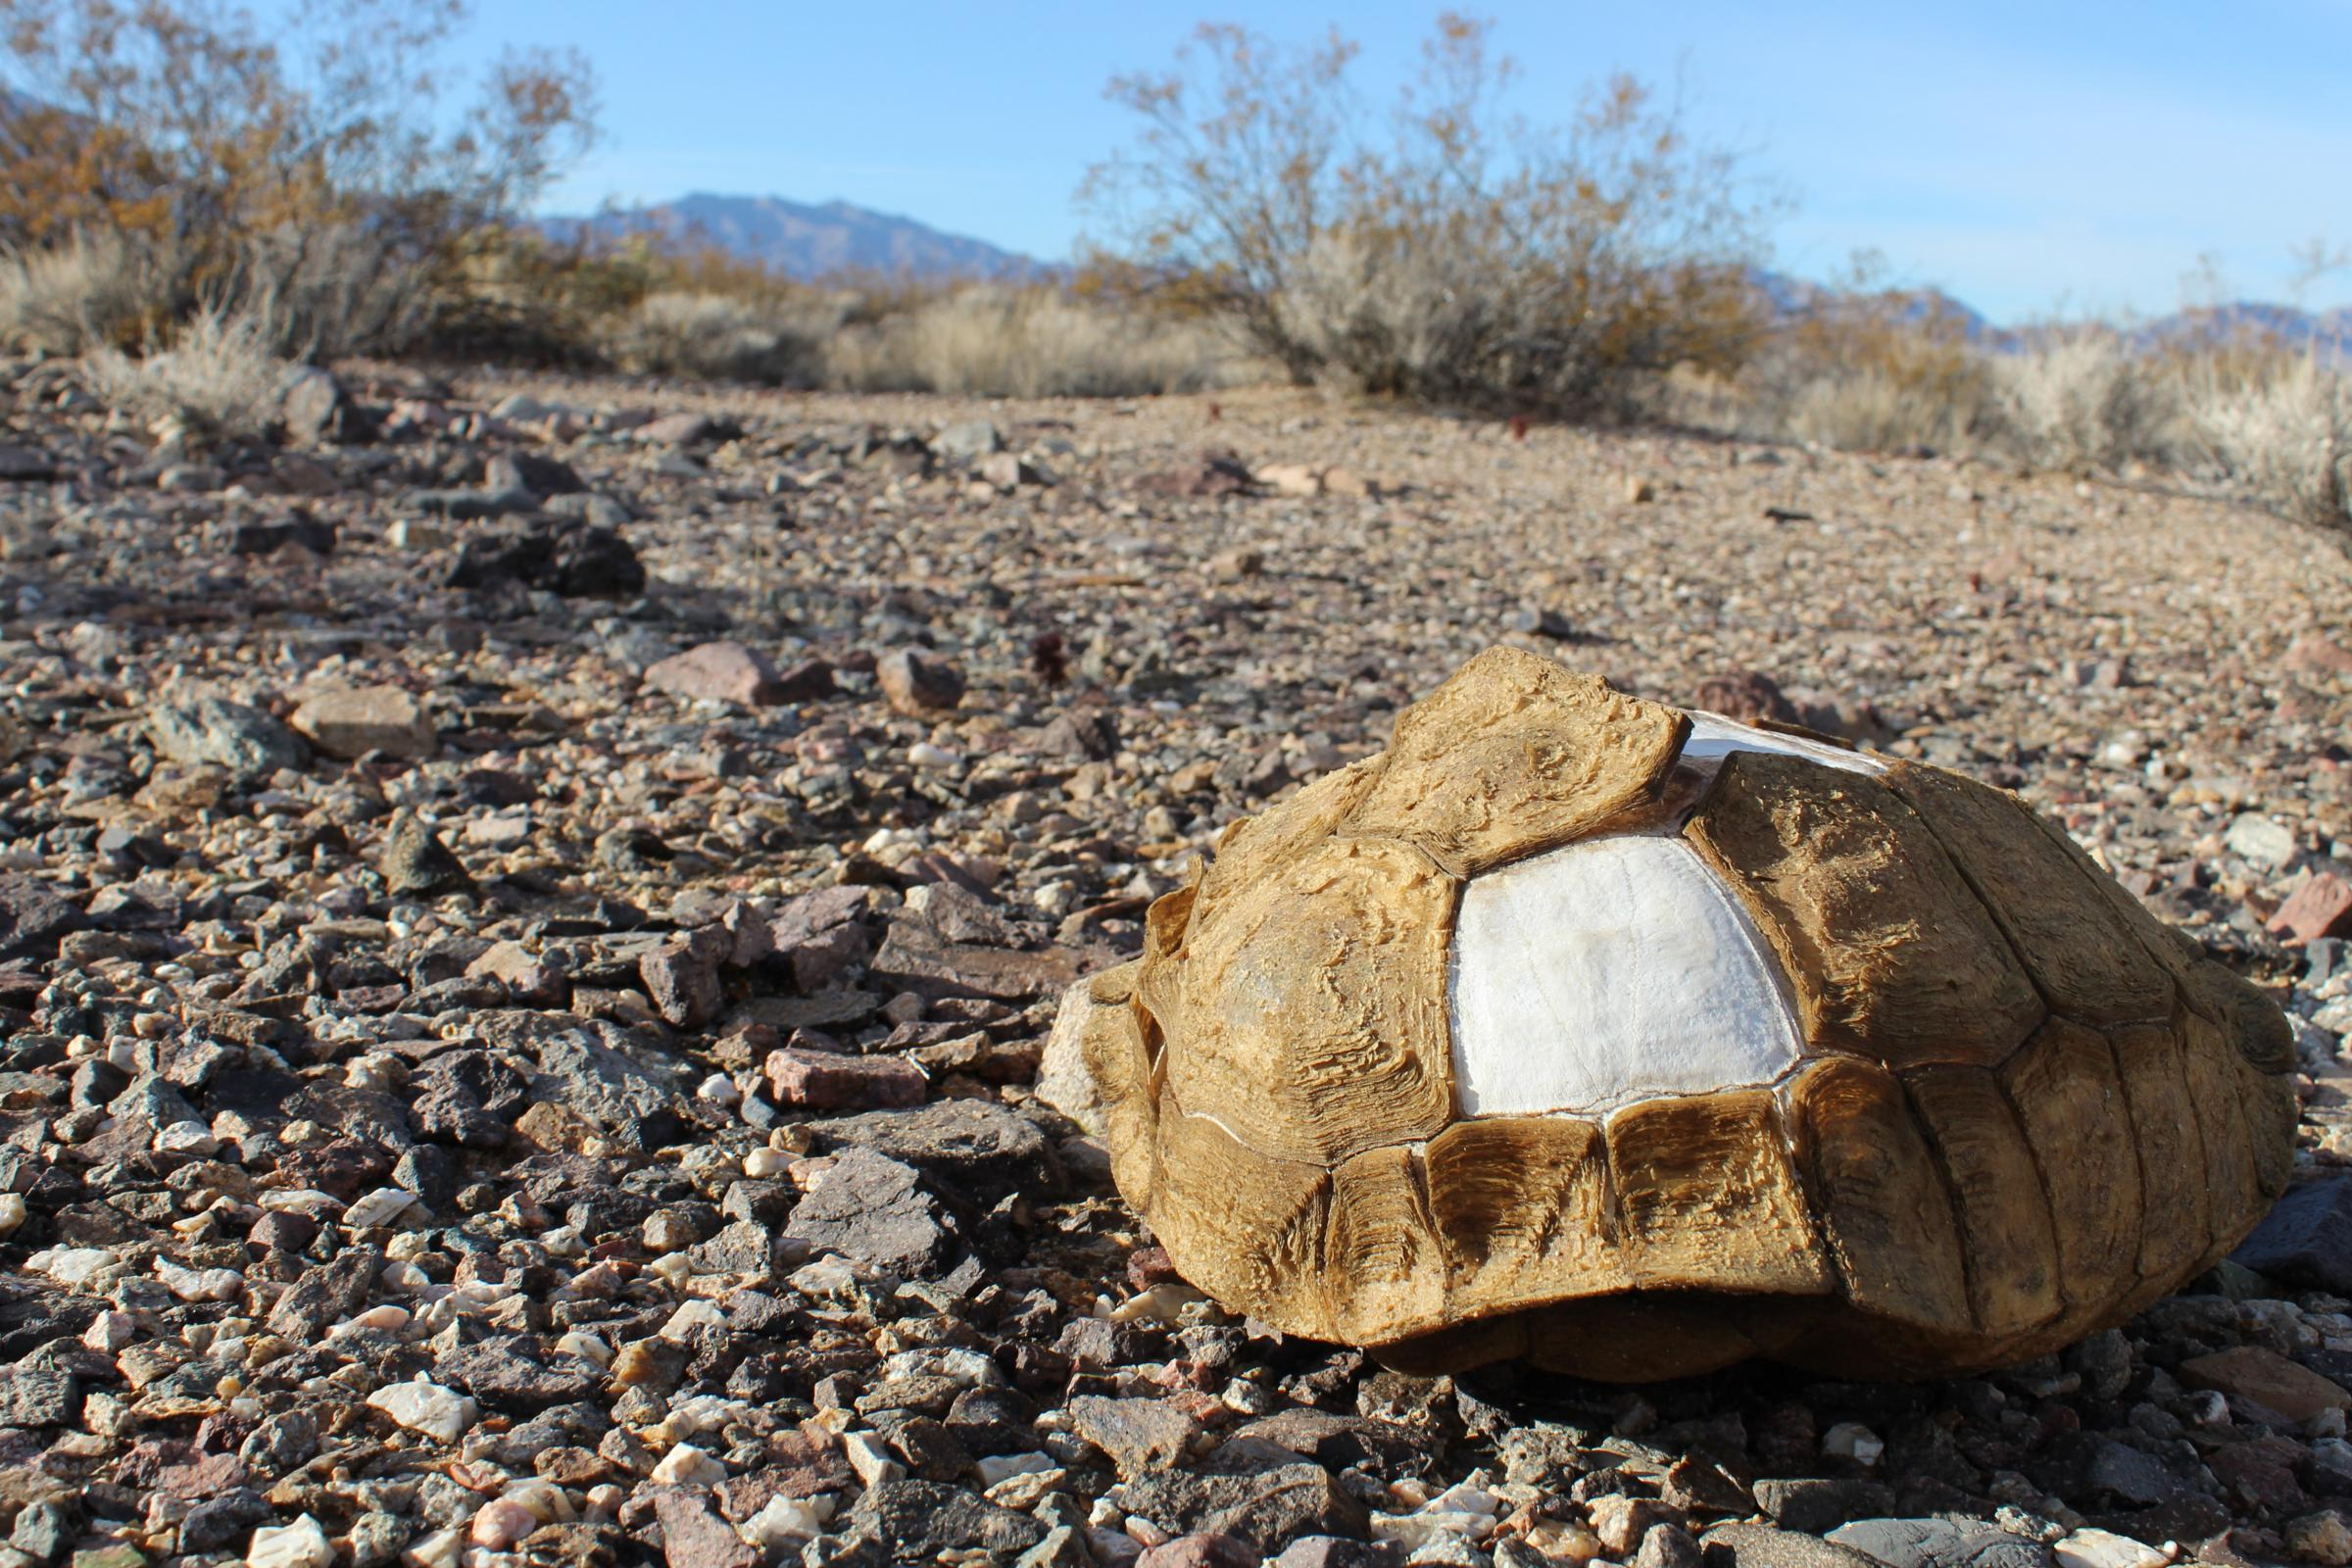 A tortoise shell rests in the Mojave desert on the Nevada-California border.